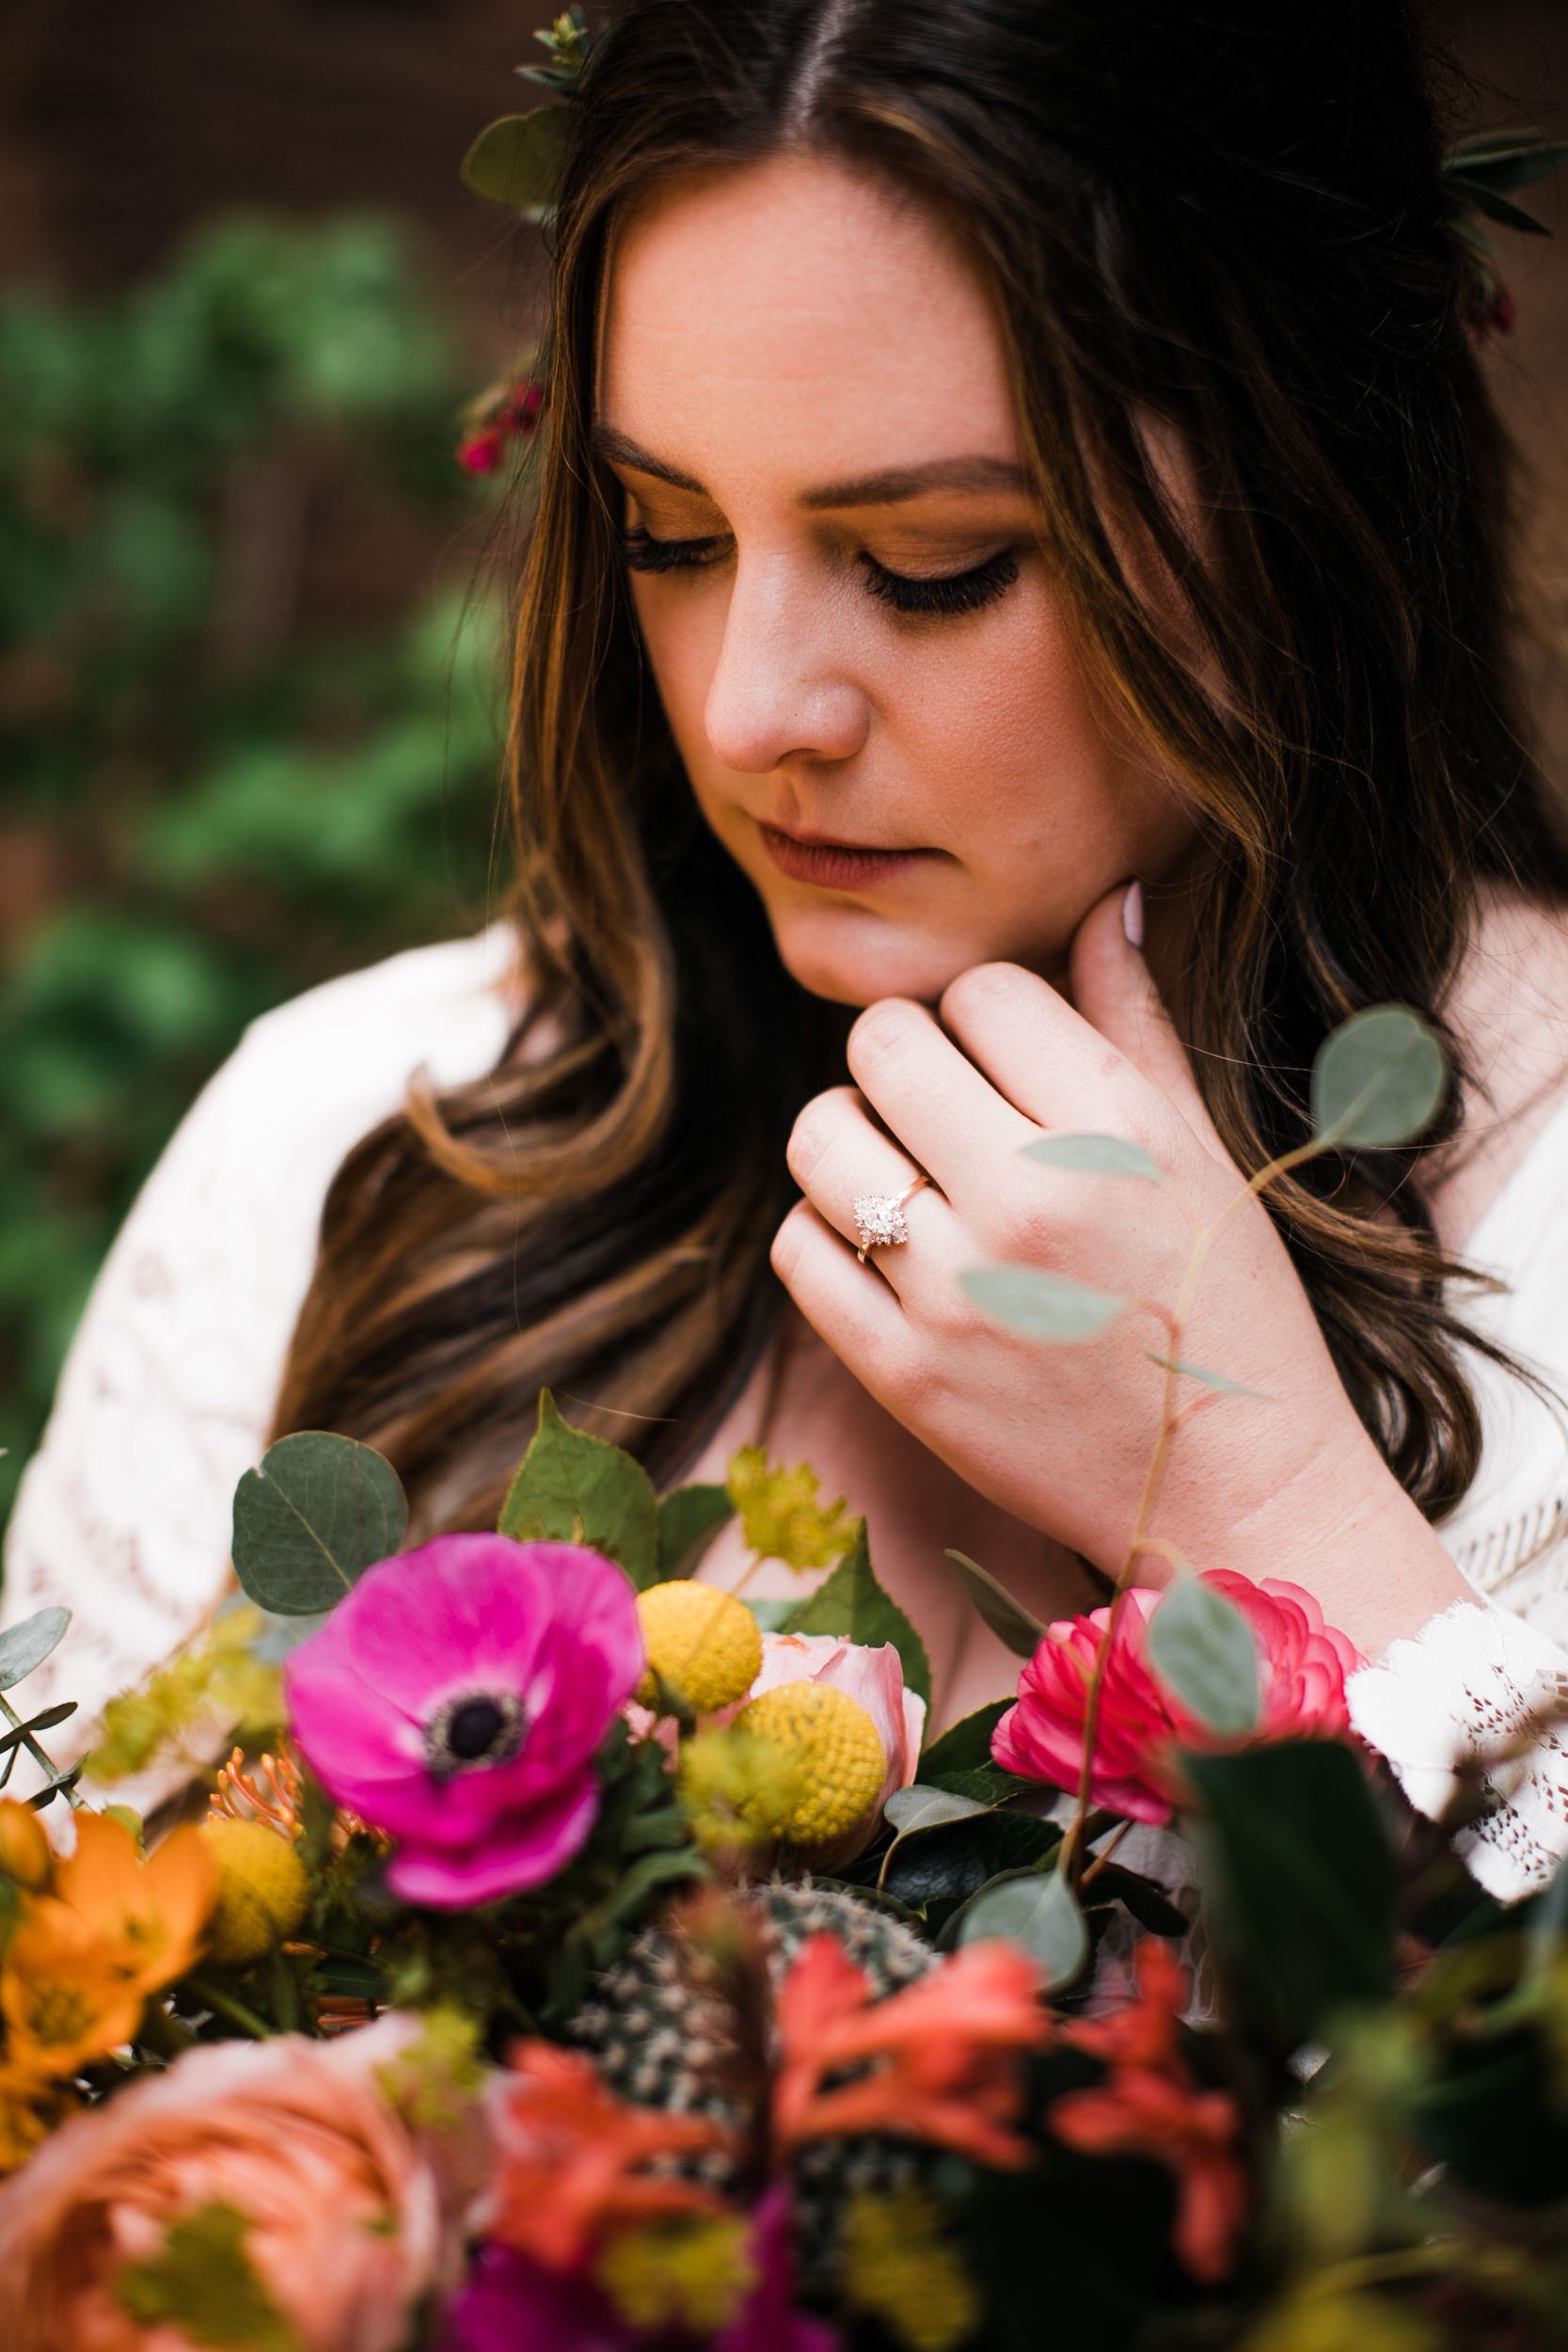 Zion national park elopement photographer | colorful elopement bouquet | alternate wedding ideas | the hearnes adventure photography